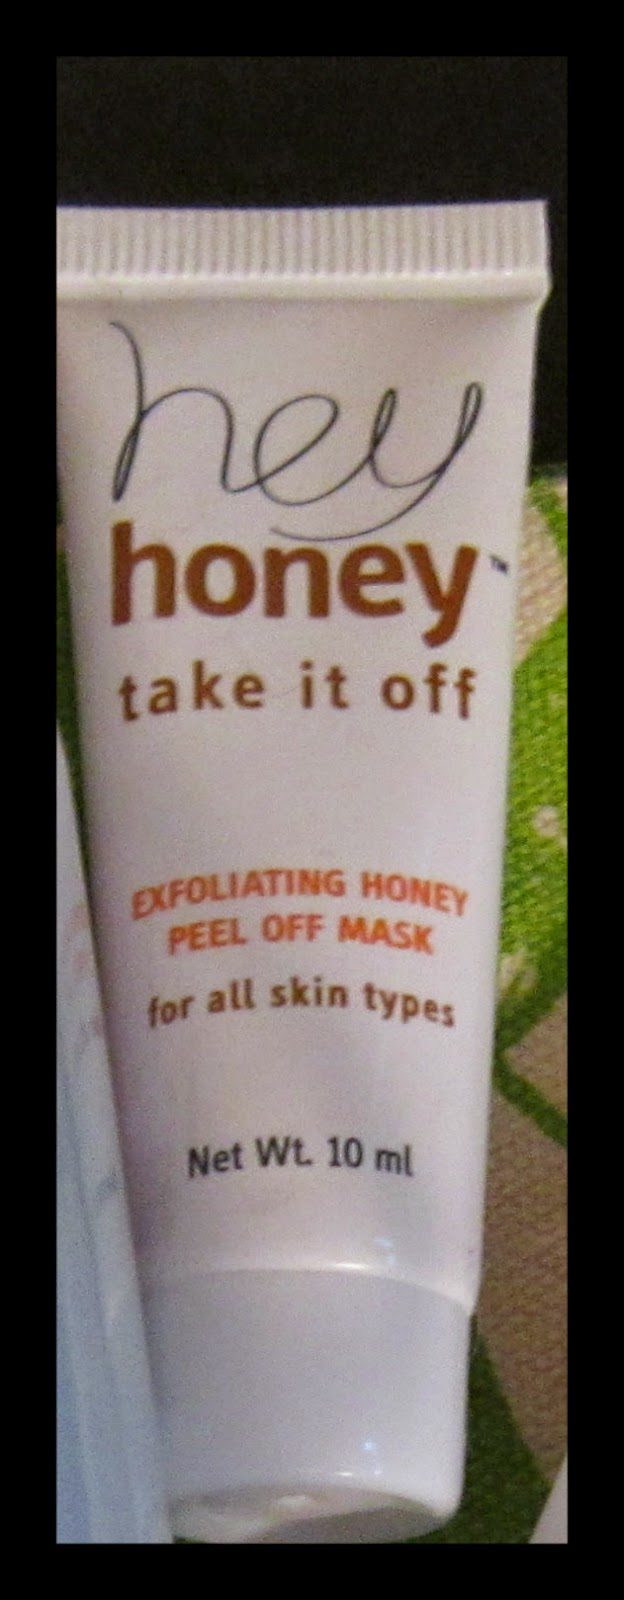 Hey Honey Take It Off! Exfoliating Honey Peel Off Mask